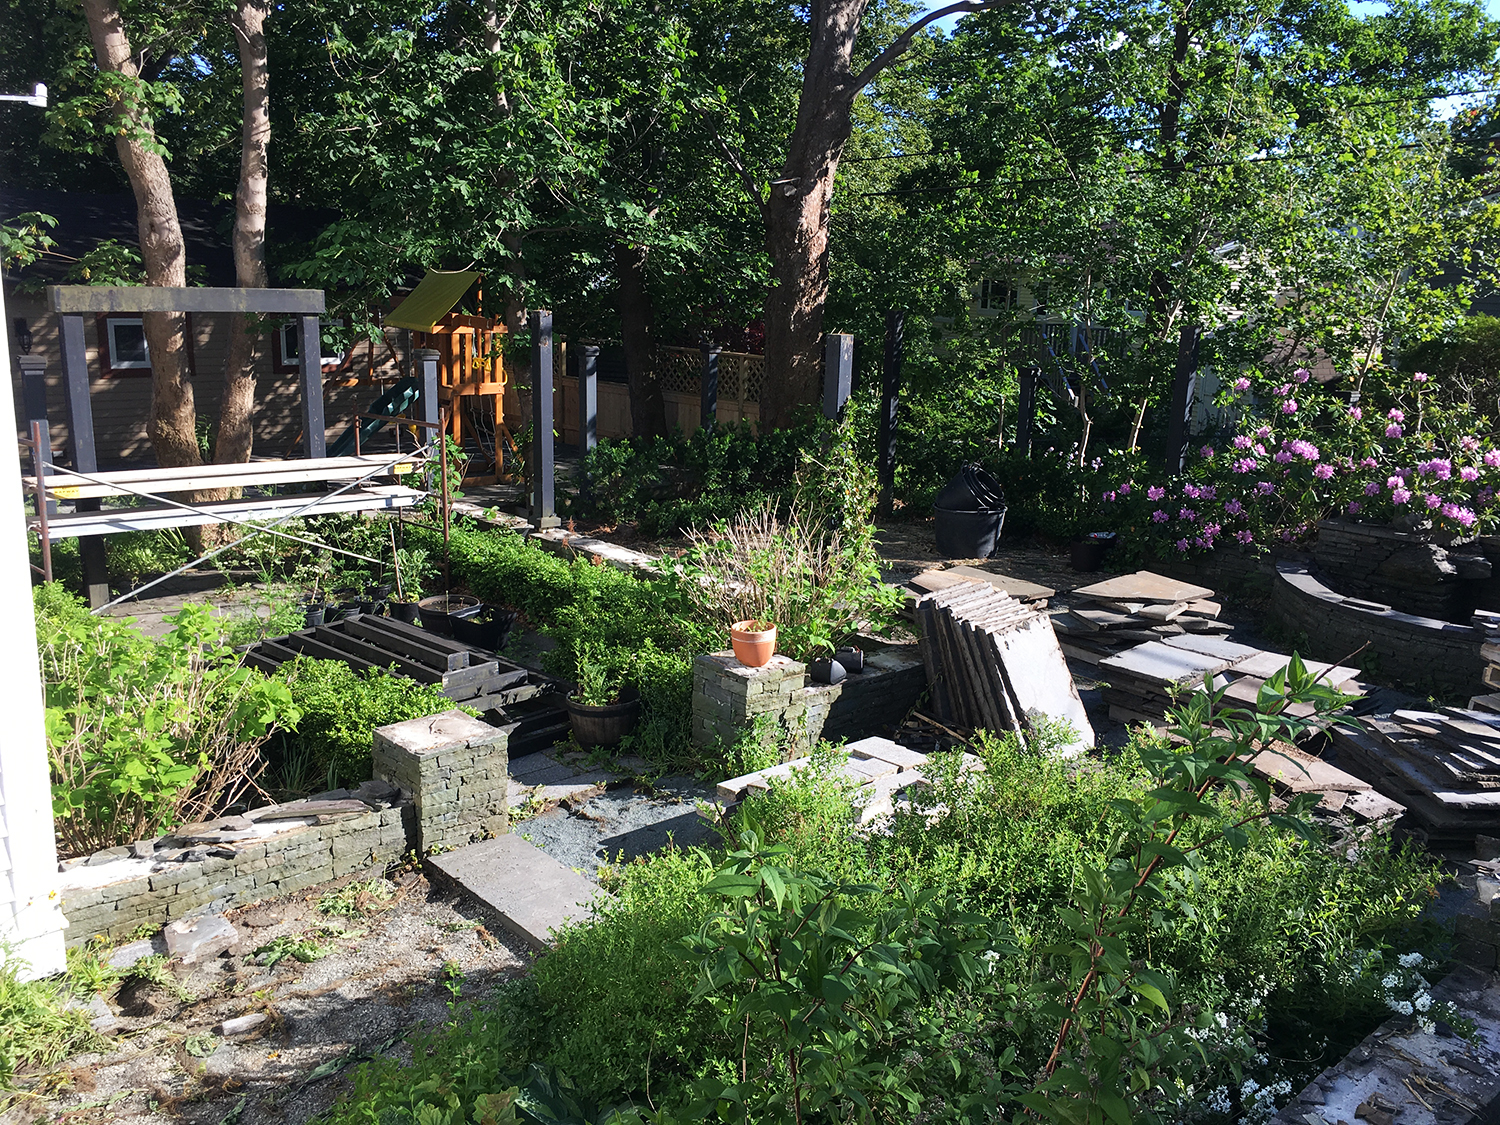 07-12-18 /  It's demo day on our latest residential project. We're reusing this beautiful natural stone in the design of a new backyard space for these lucky homeowners.